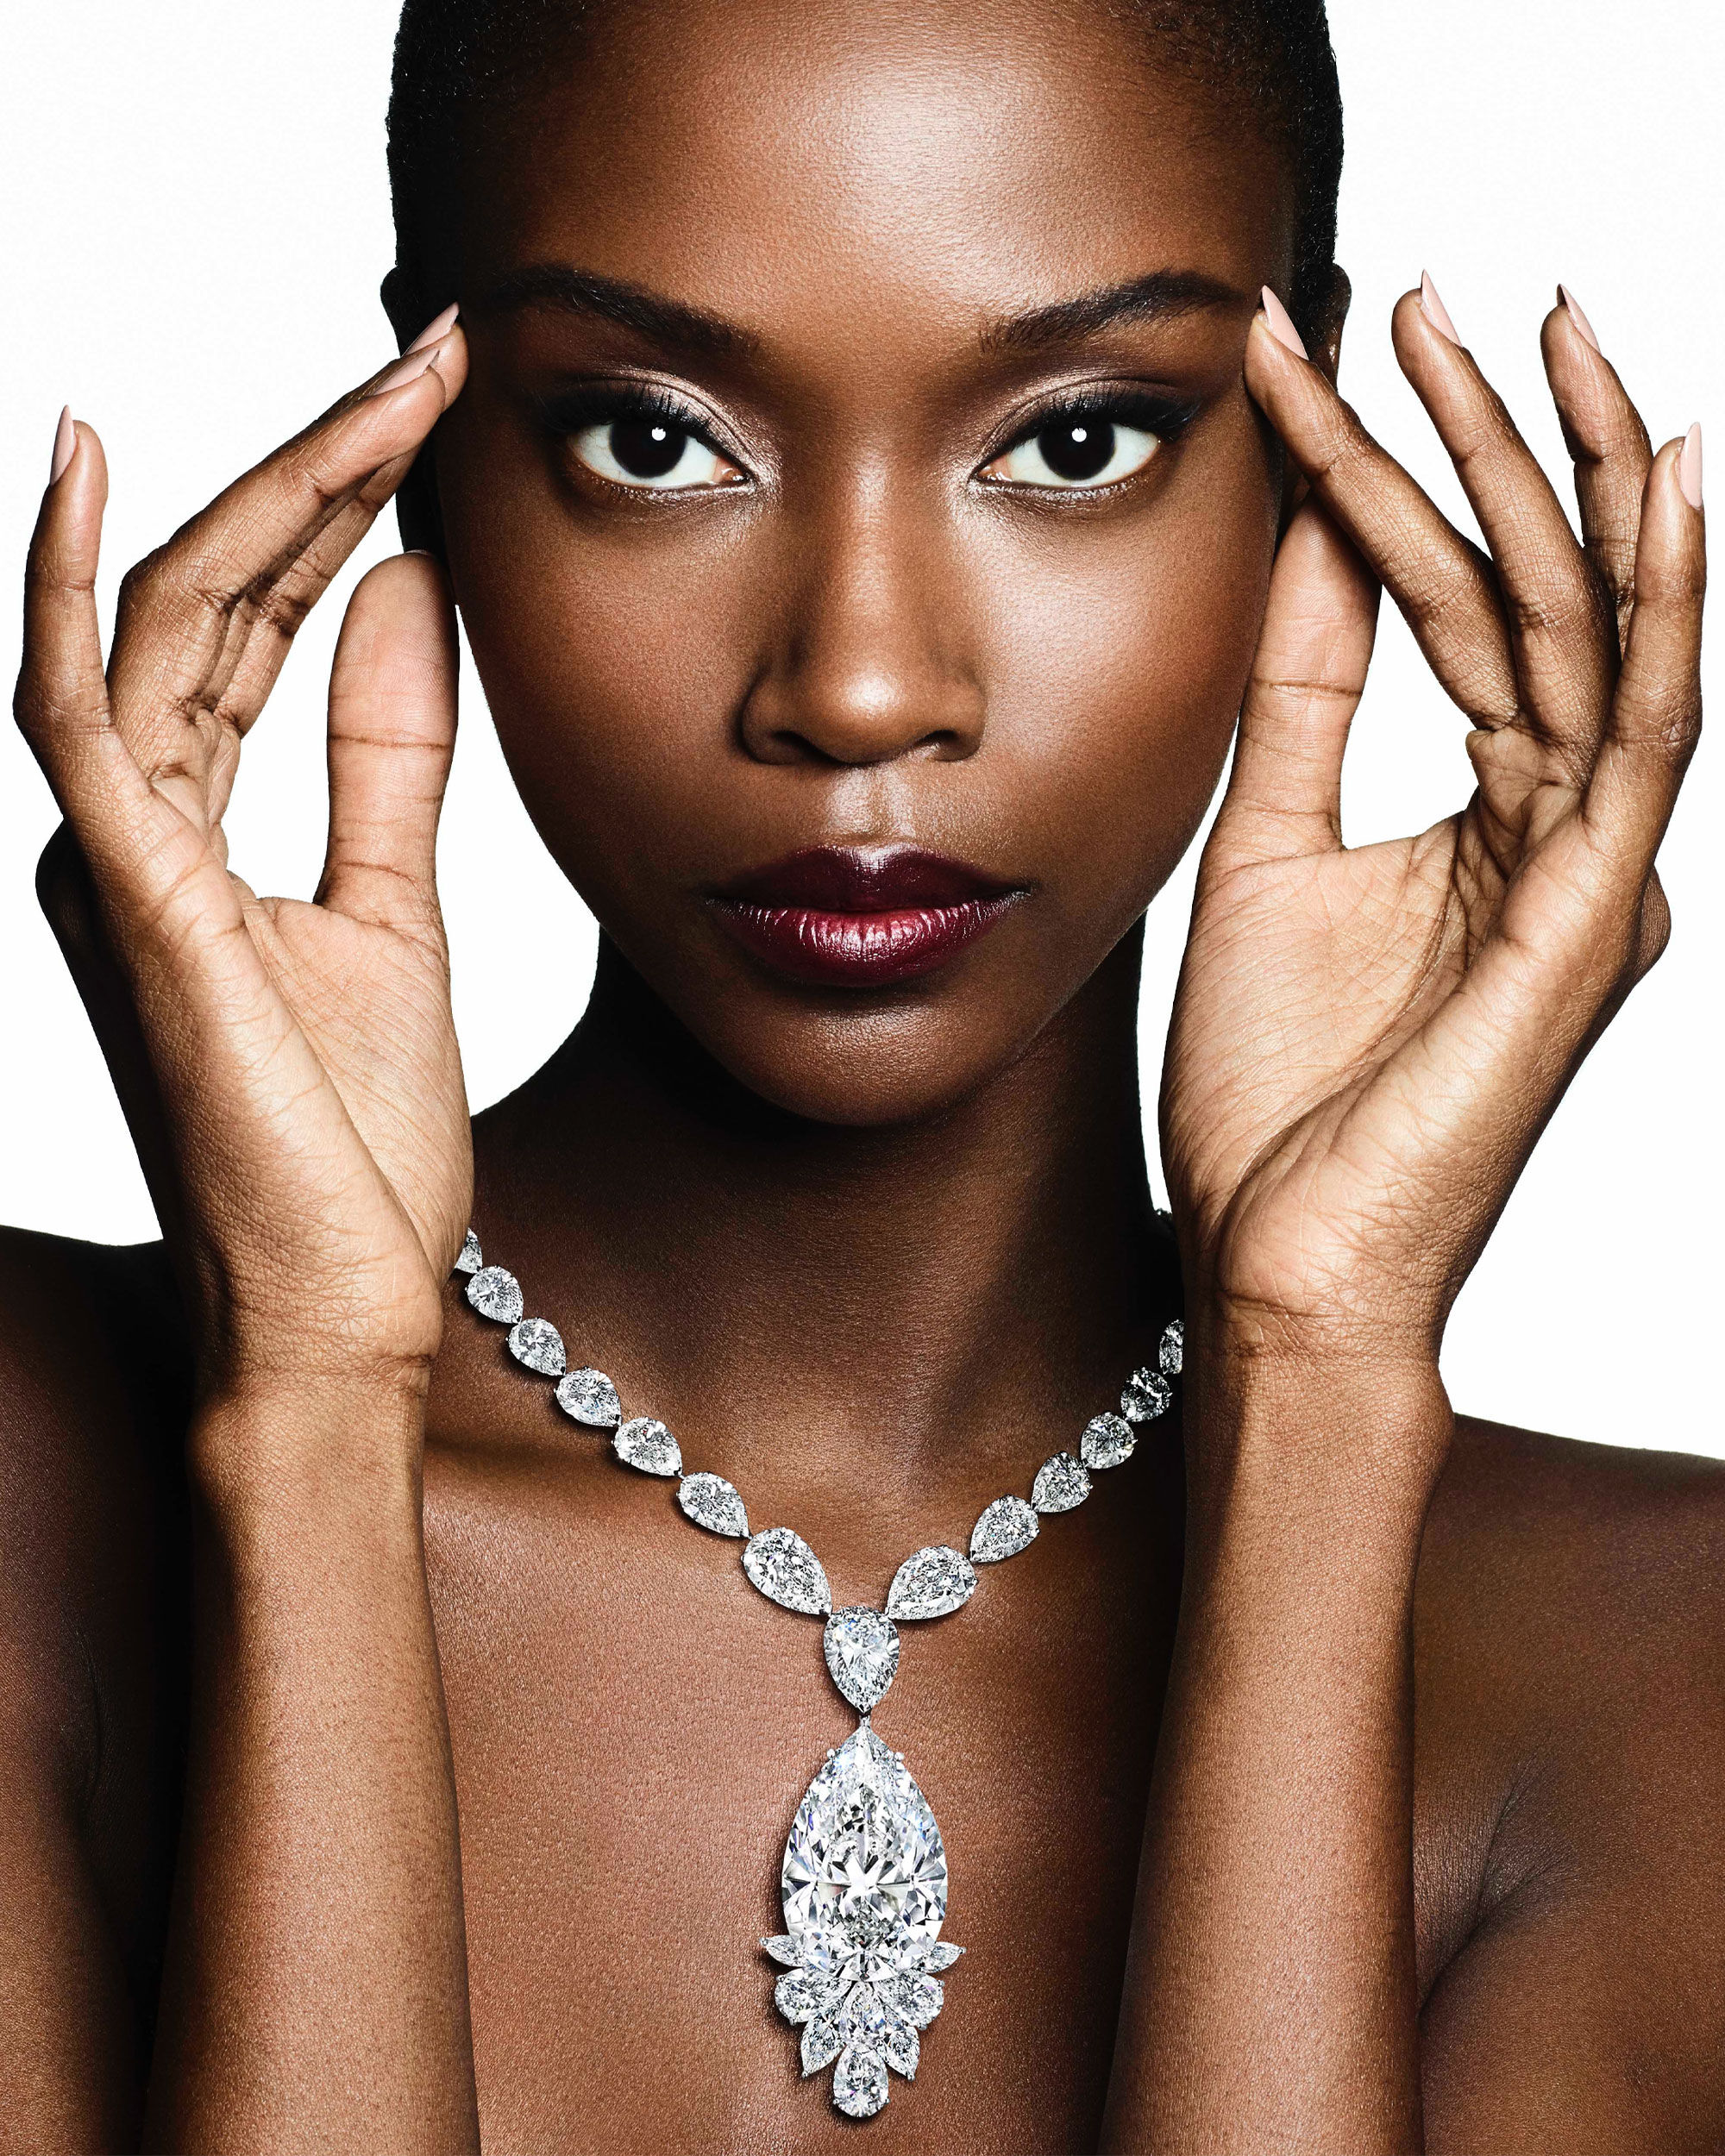 Model wears a Graff high jewellery diamond necklace featuring a pear shape diamond from the Meya Prosperity